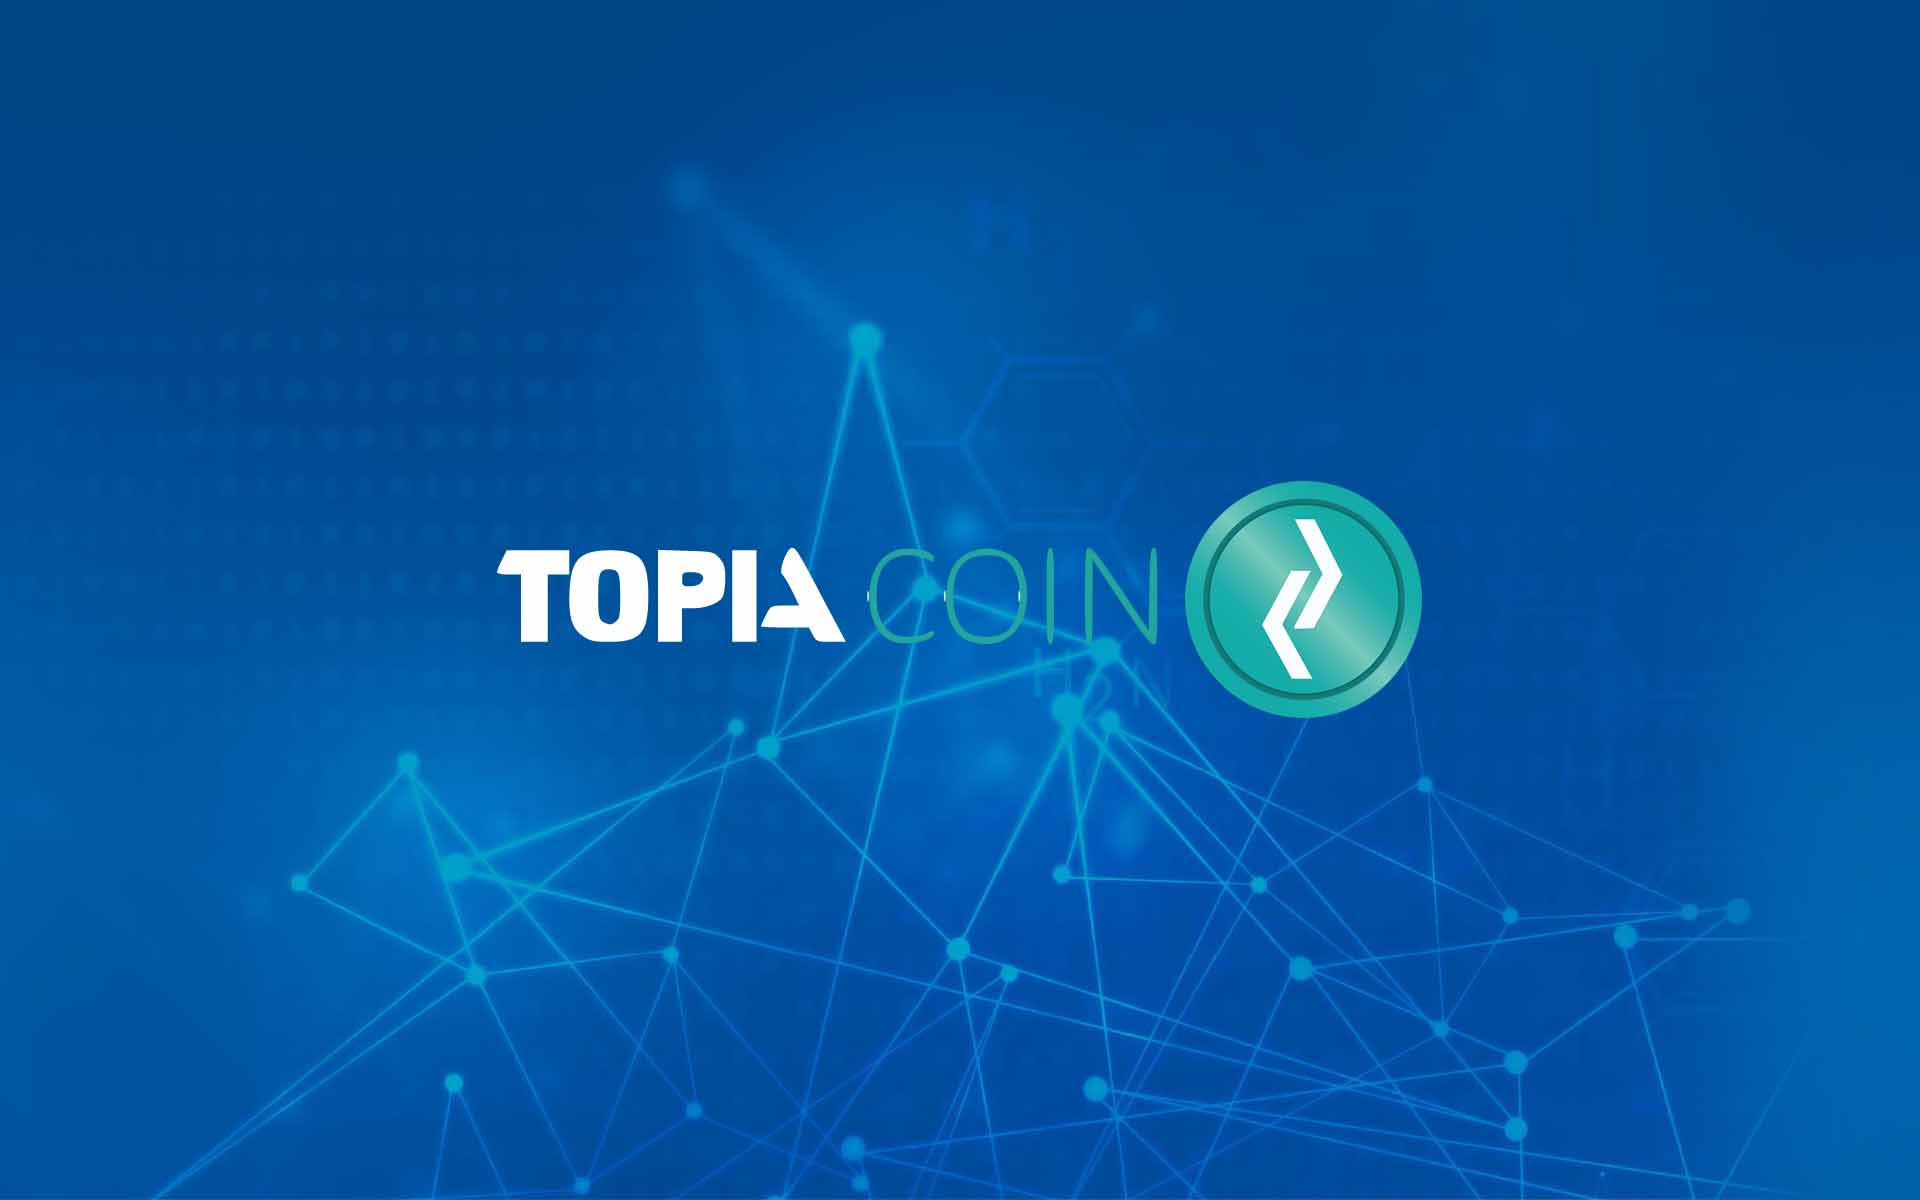 TopiaCoin: A Select Opportunity For Accredited Investors